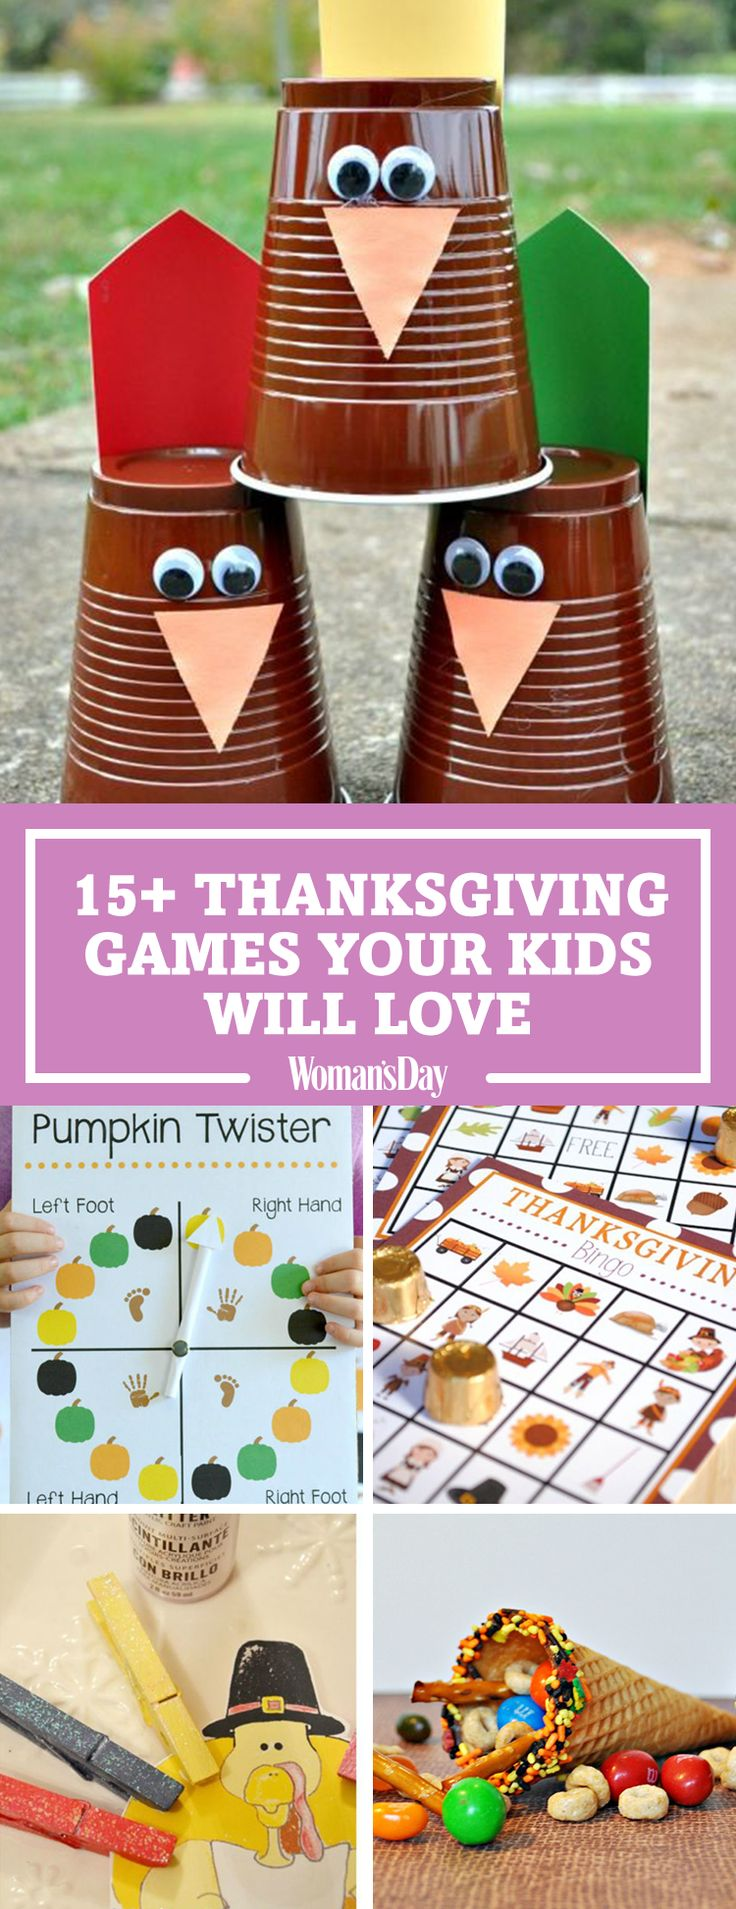 Save these great Thanksgiving games your kids will lovefor later! Don't forget tofollow Woman's Day on Pinterestfor more great ideas for kids.